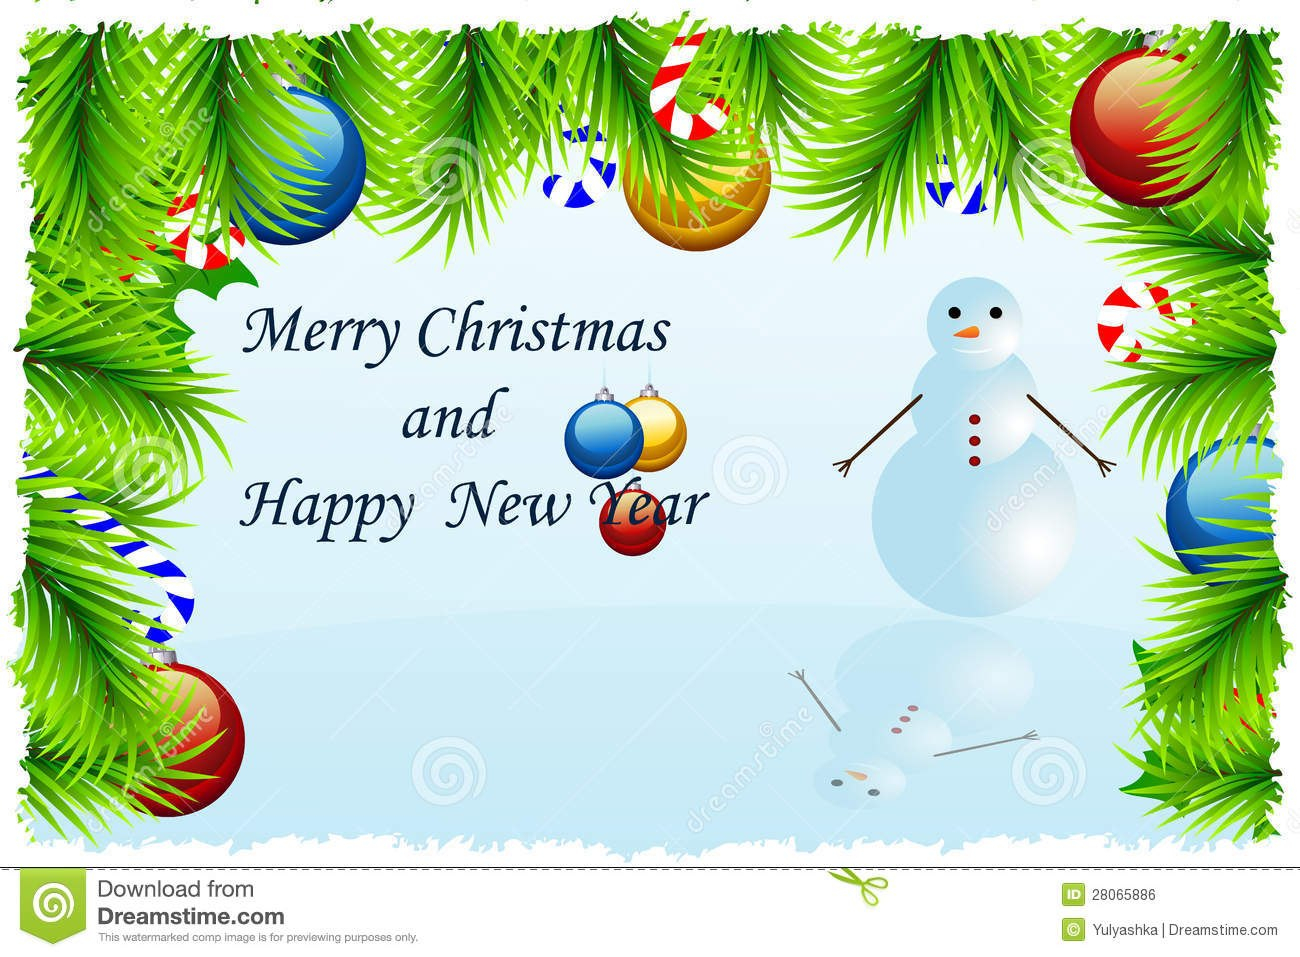 Template Christmas Greeting Card Stock Vector  Illustration Of Intended For Christmas Photo Cards Templates Free Downloads